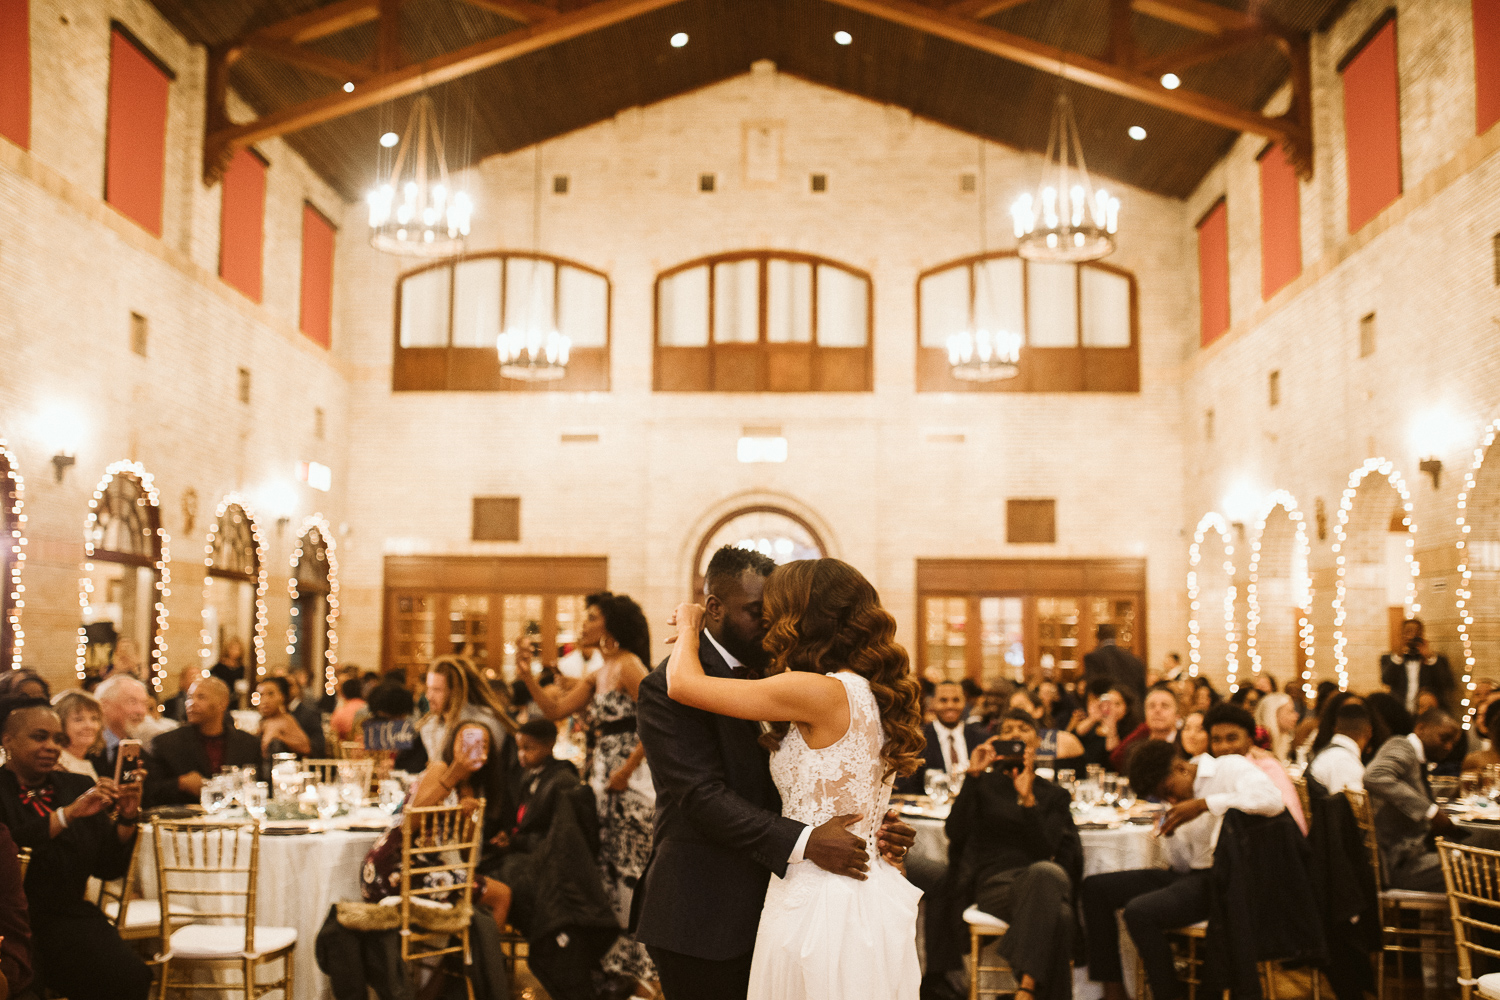 couple's first dance at st francis hall washington dc wedding venue